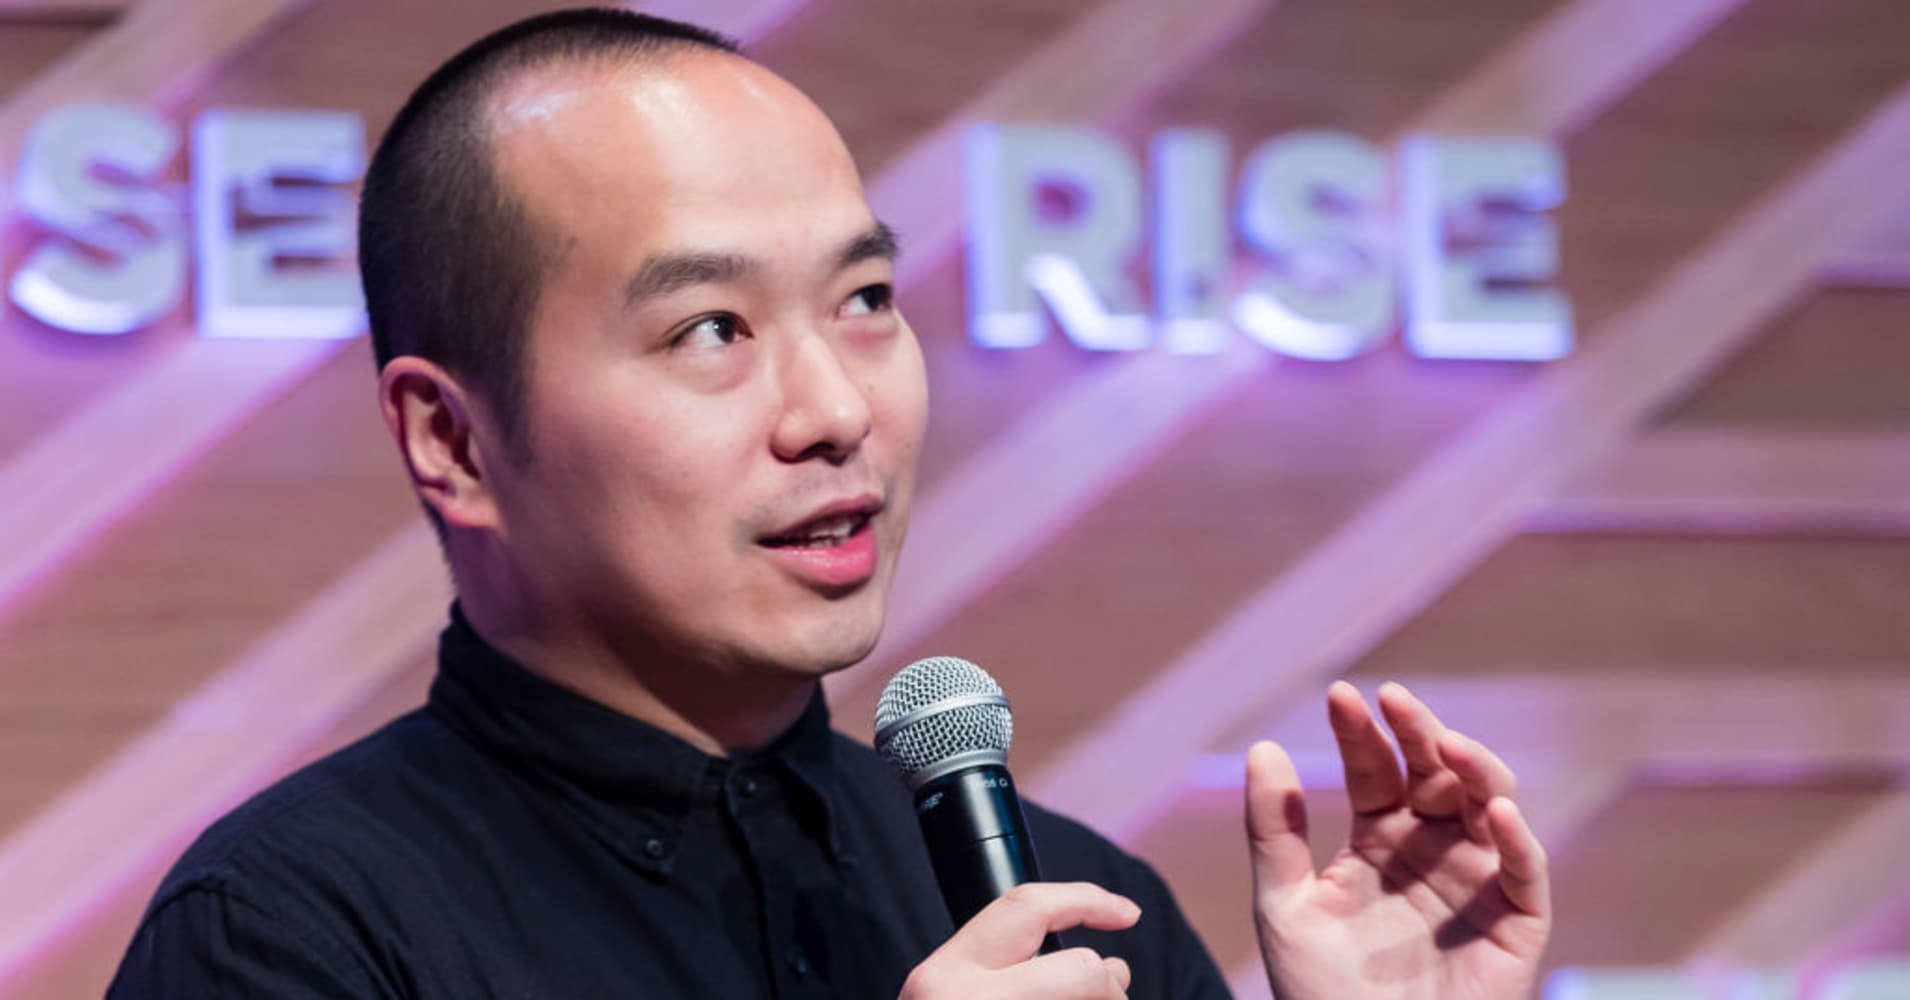 Ray Chan, co-founder and chief executive officer of 9GAG, attends the Day 3 of the RISE Conference 2018 at Hong Kong Convention and Exhibition Centre on July 12, 2018 in Hong Kong, Hong Kong.